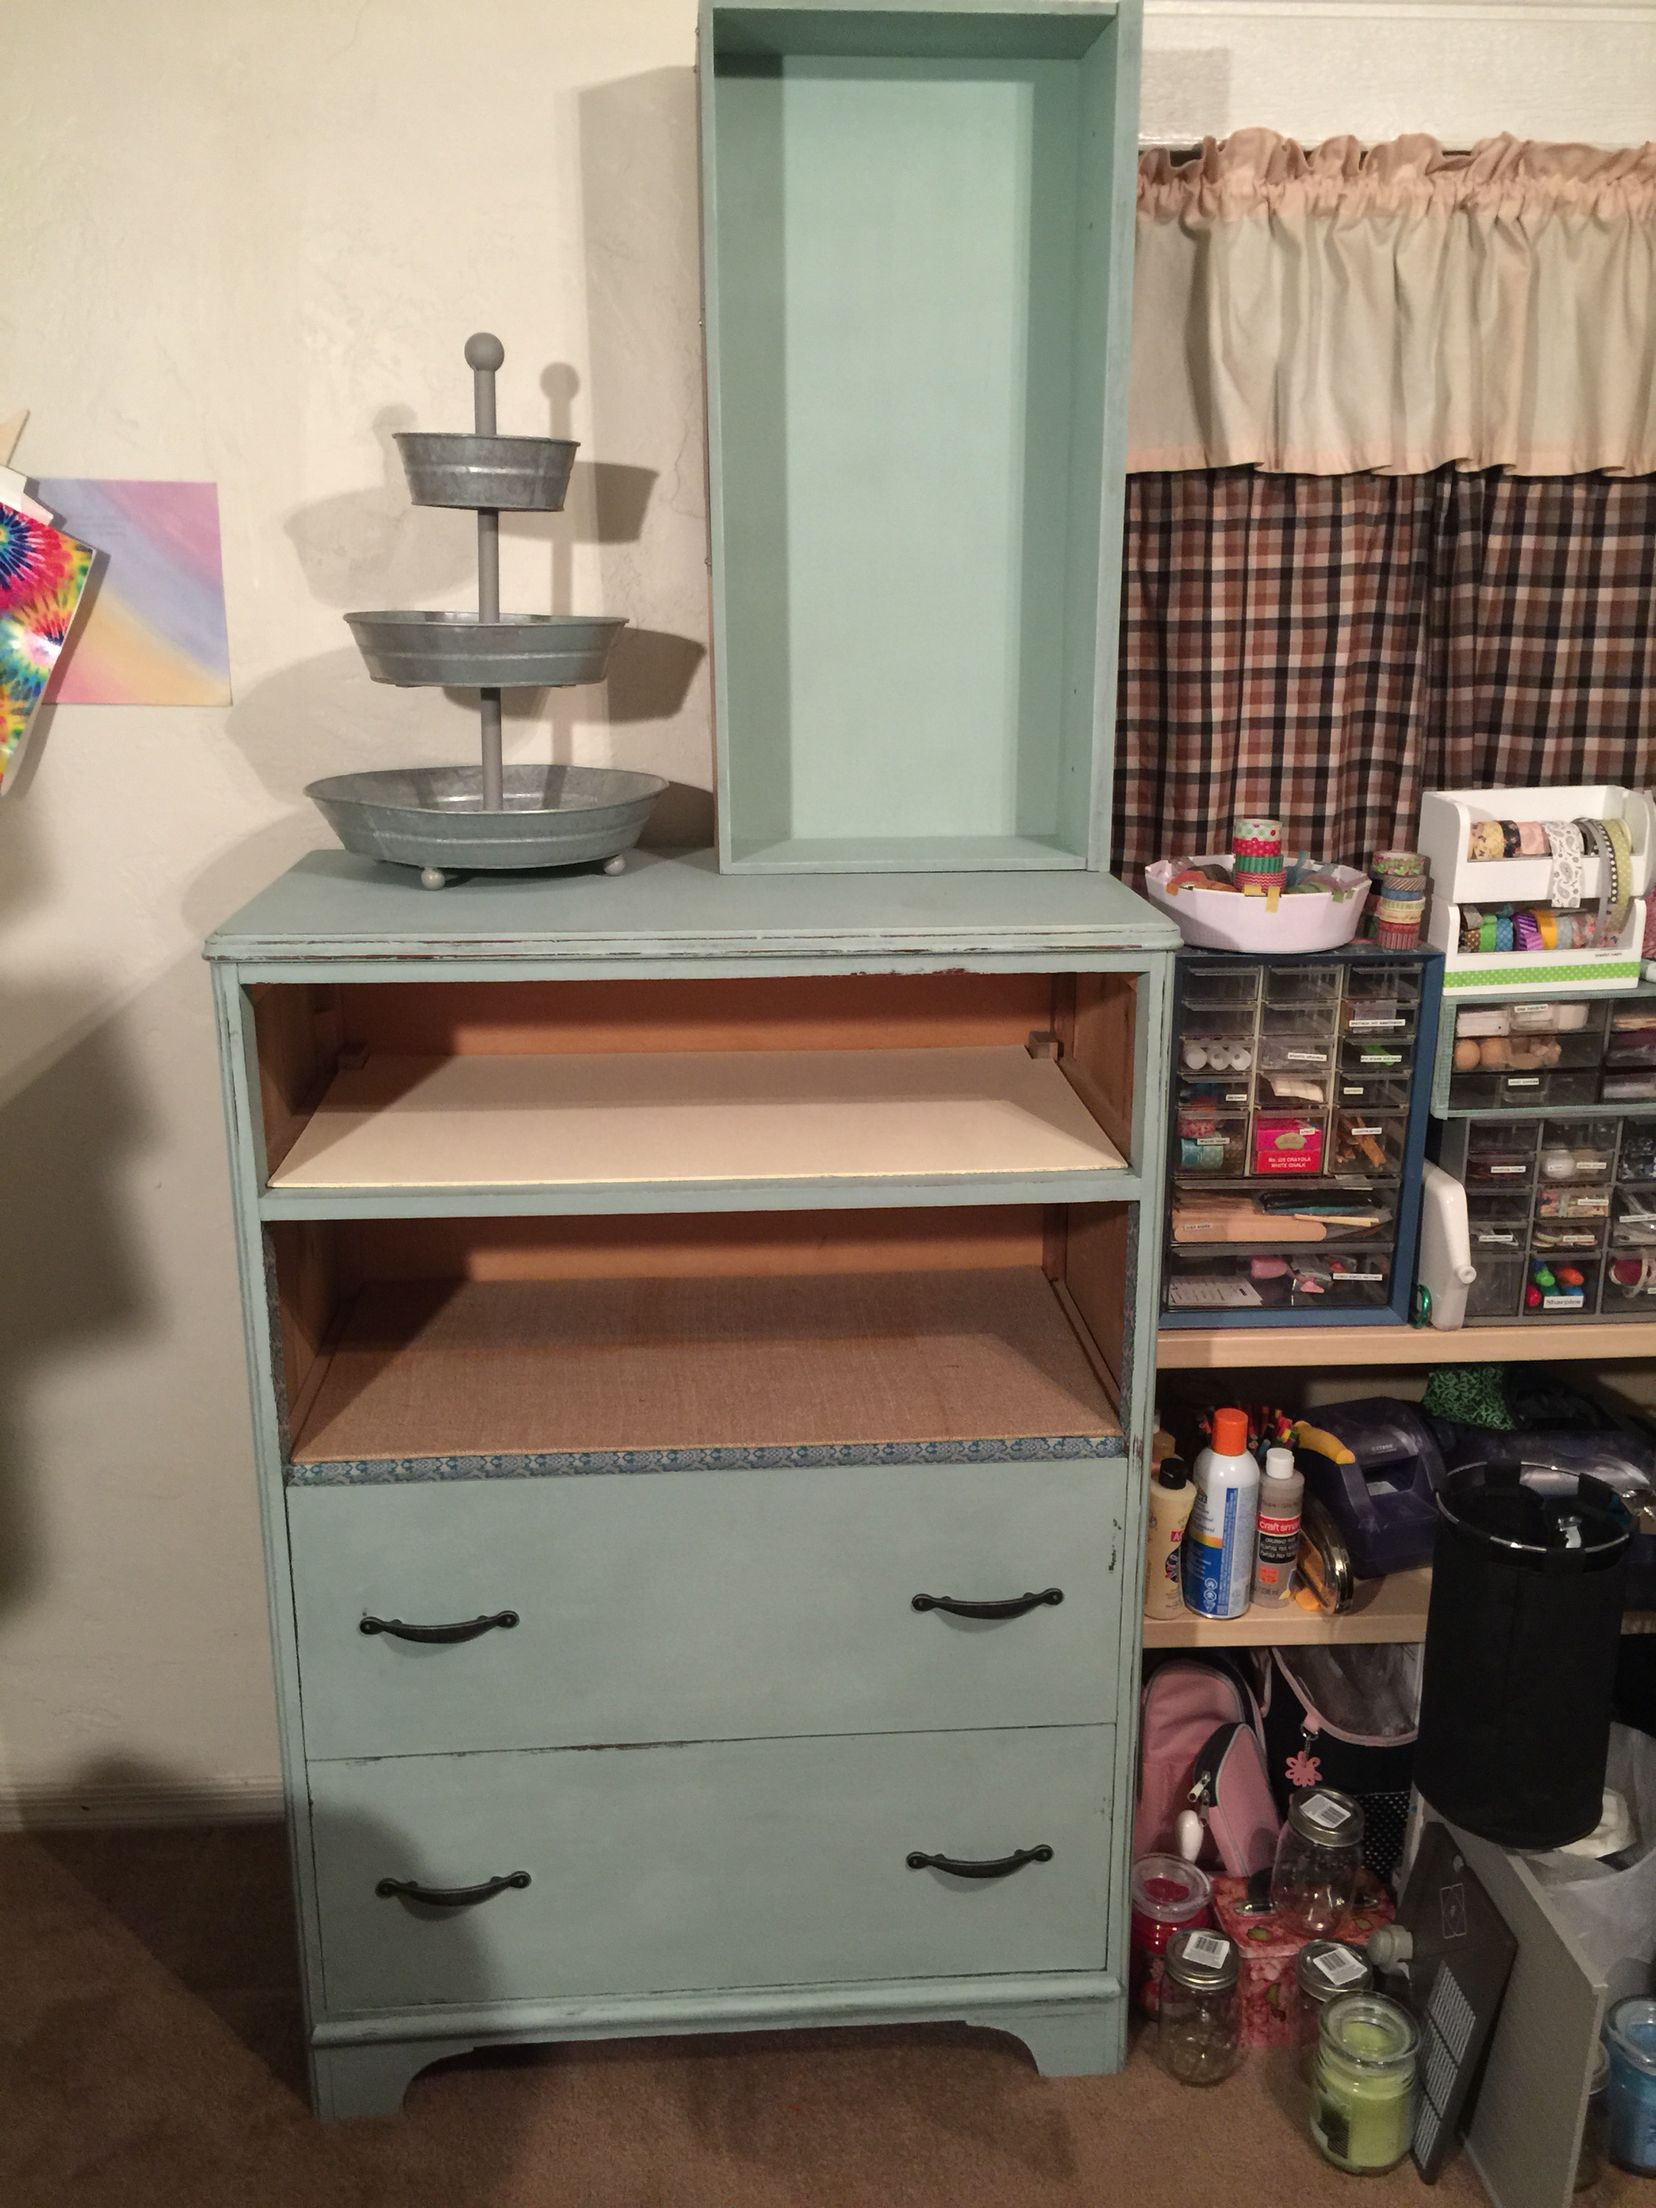 My first repurposed dresser, I turned in to a craft storage unit. The drawer on top was from the dresser and the inside is painted with chalkboard paint. The dresser is painted with #AnnieSloanchalkpaint #duckegg